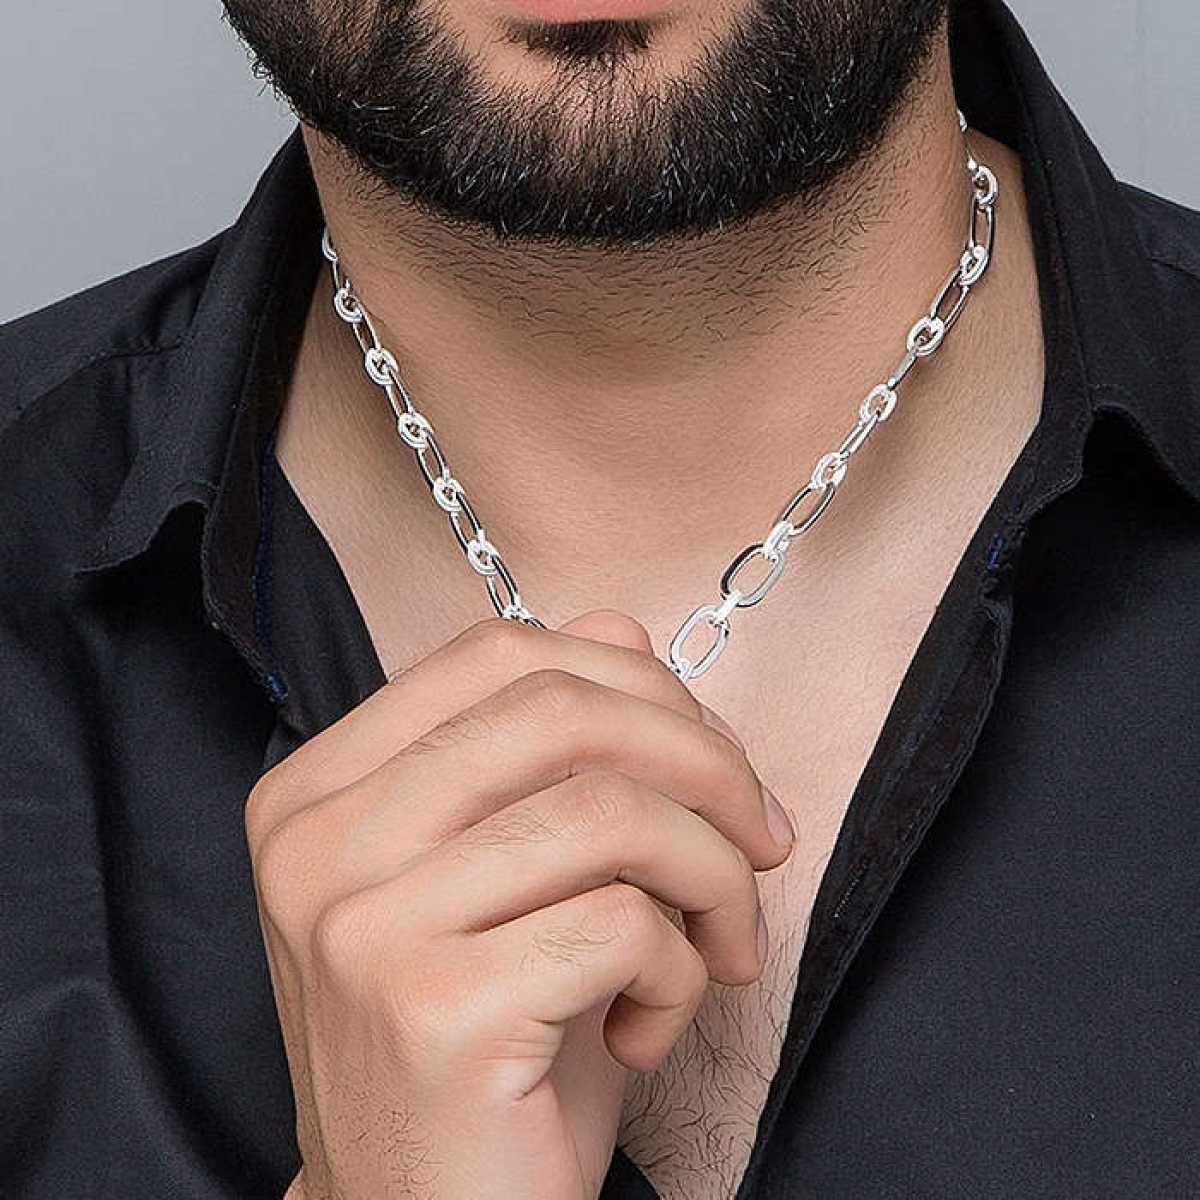 New Look  Mens Chain for Men